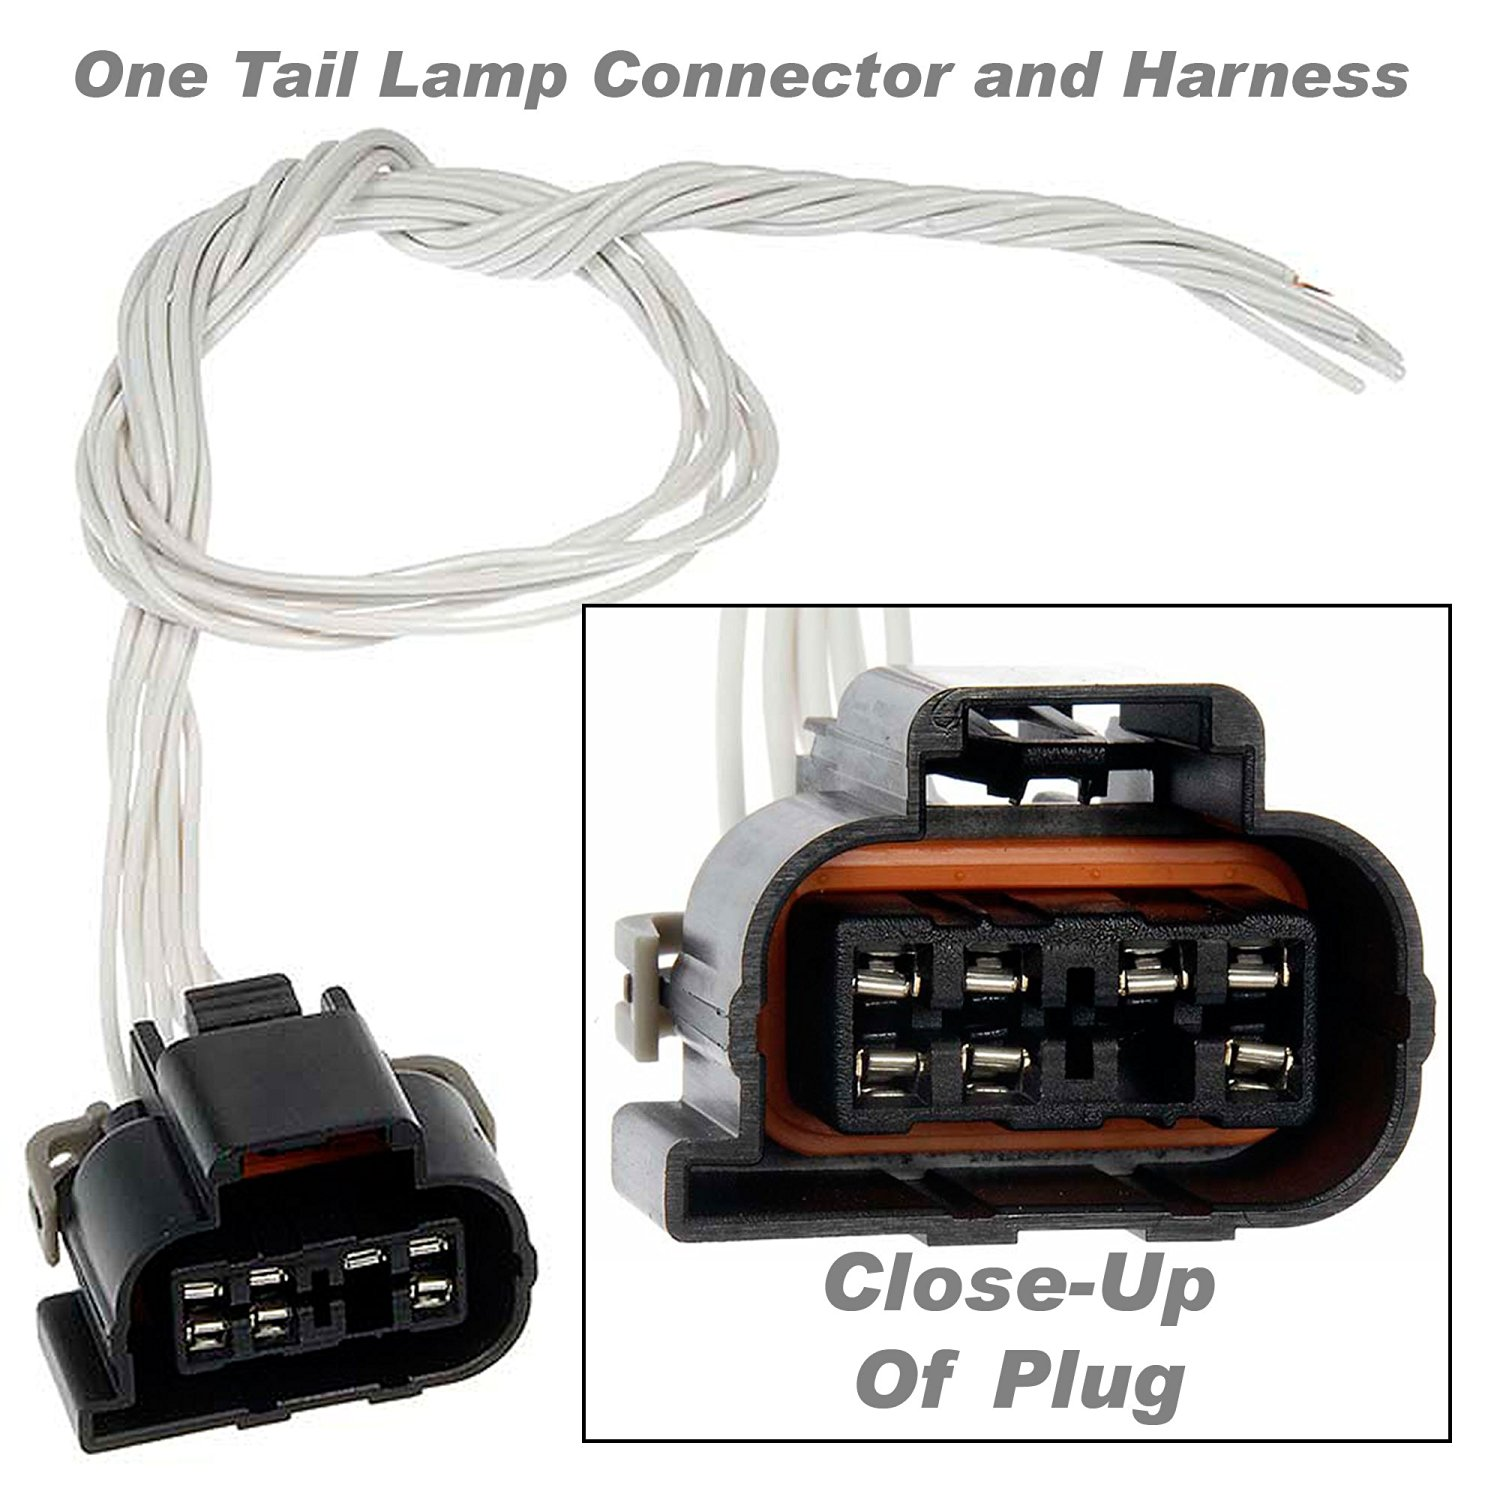 hight resolution of apdty 756760 wiring harness pigtail connector 7 way wire leads fits tail lamp or instrument